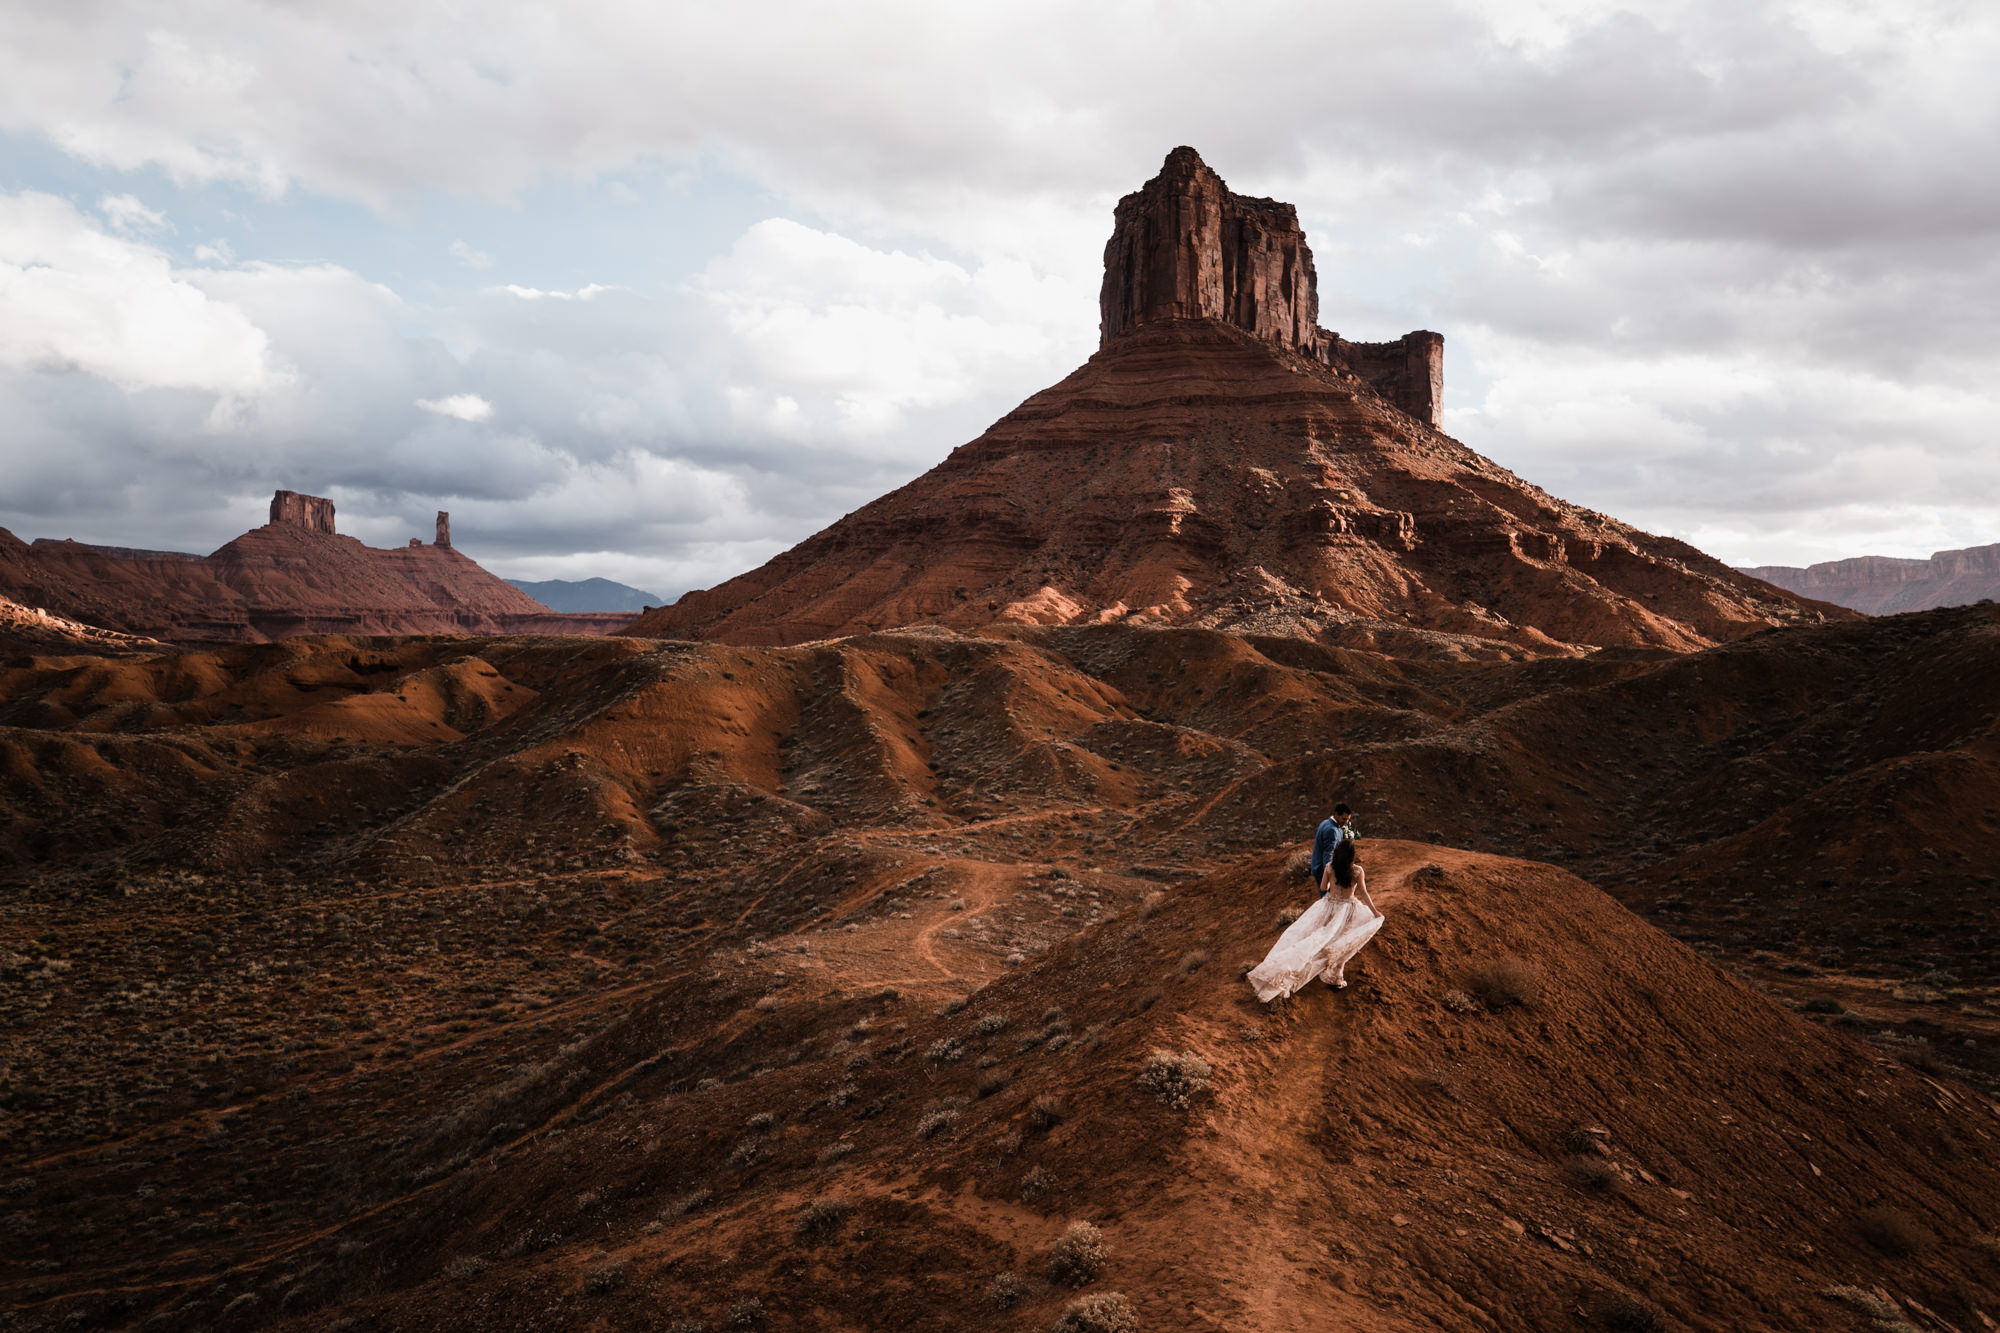 Bride and groom on their wedding day in moab utah